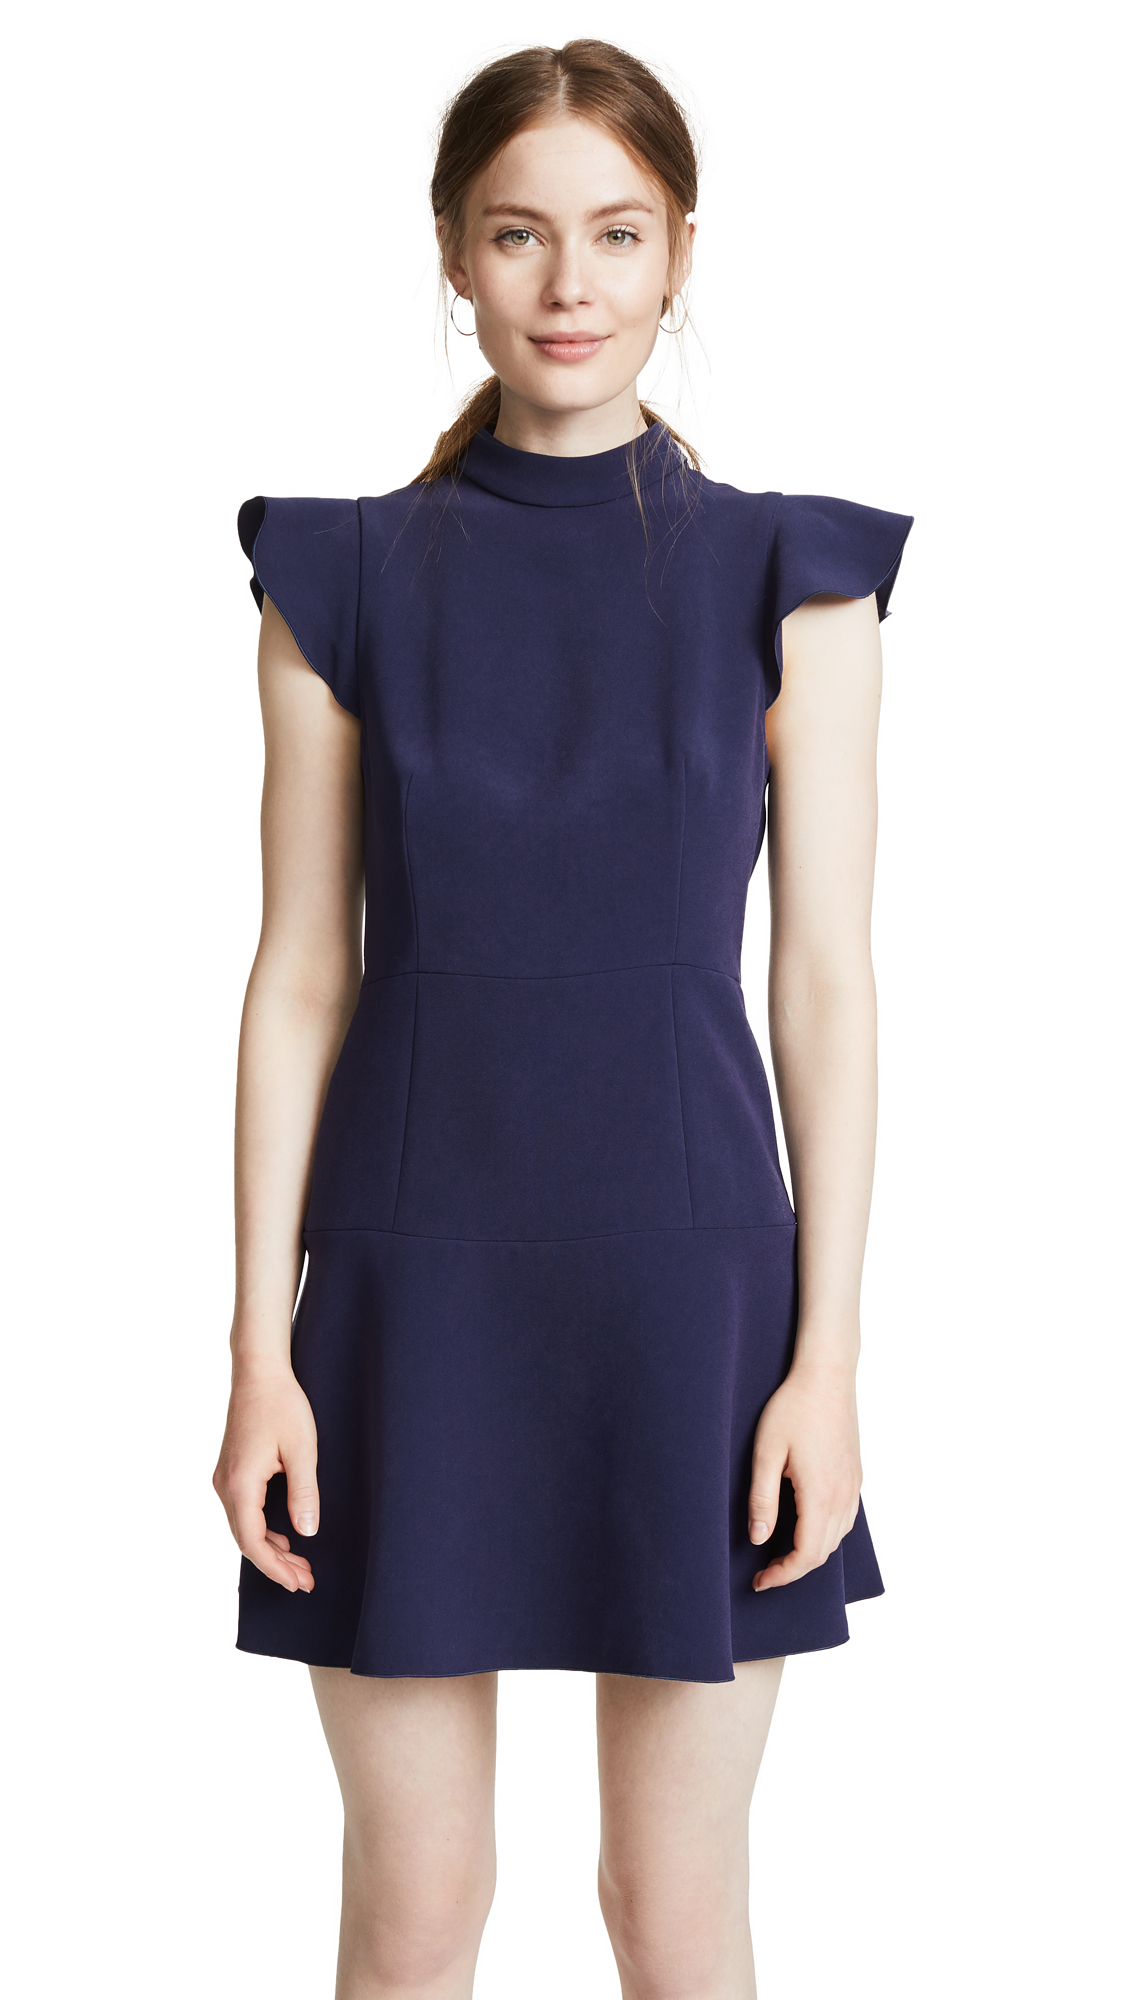 Parma Dress, Navy from Gilt